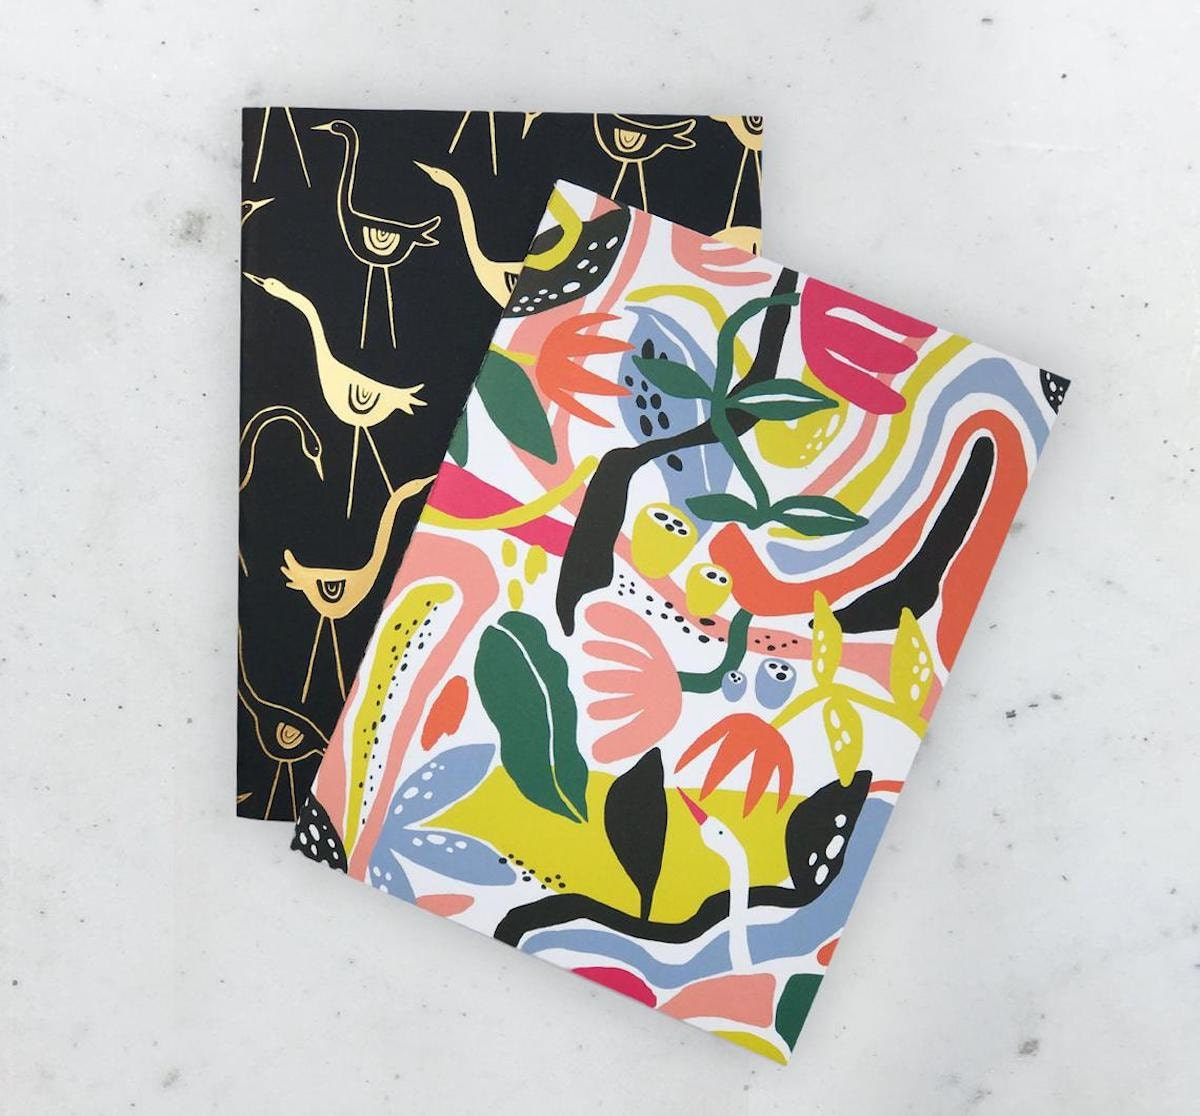 Fantastical garden notebooks from Idlewild Co. on Etsy